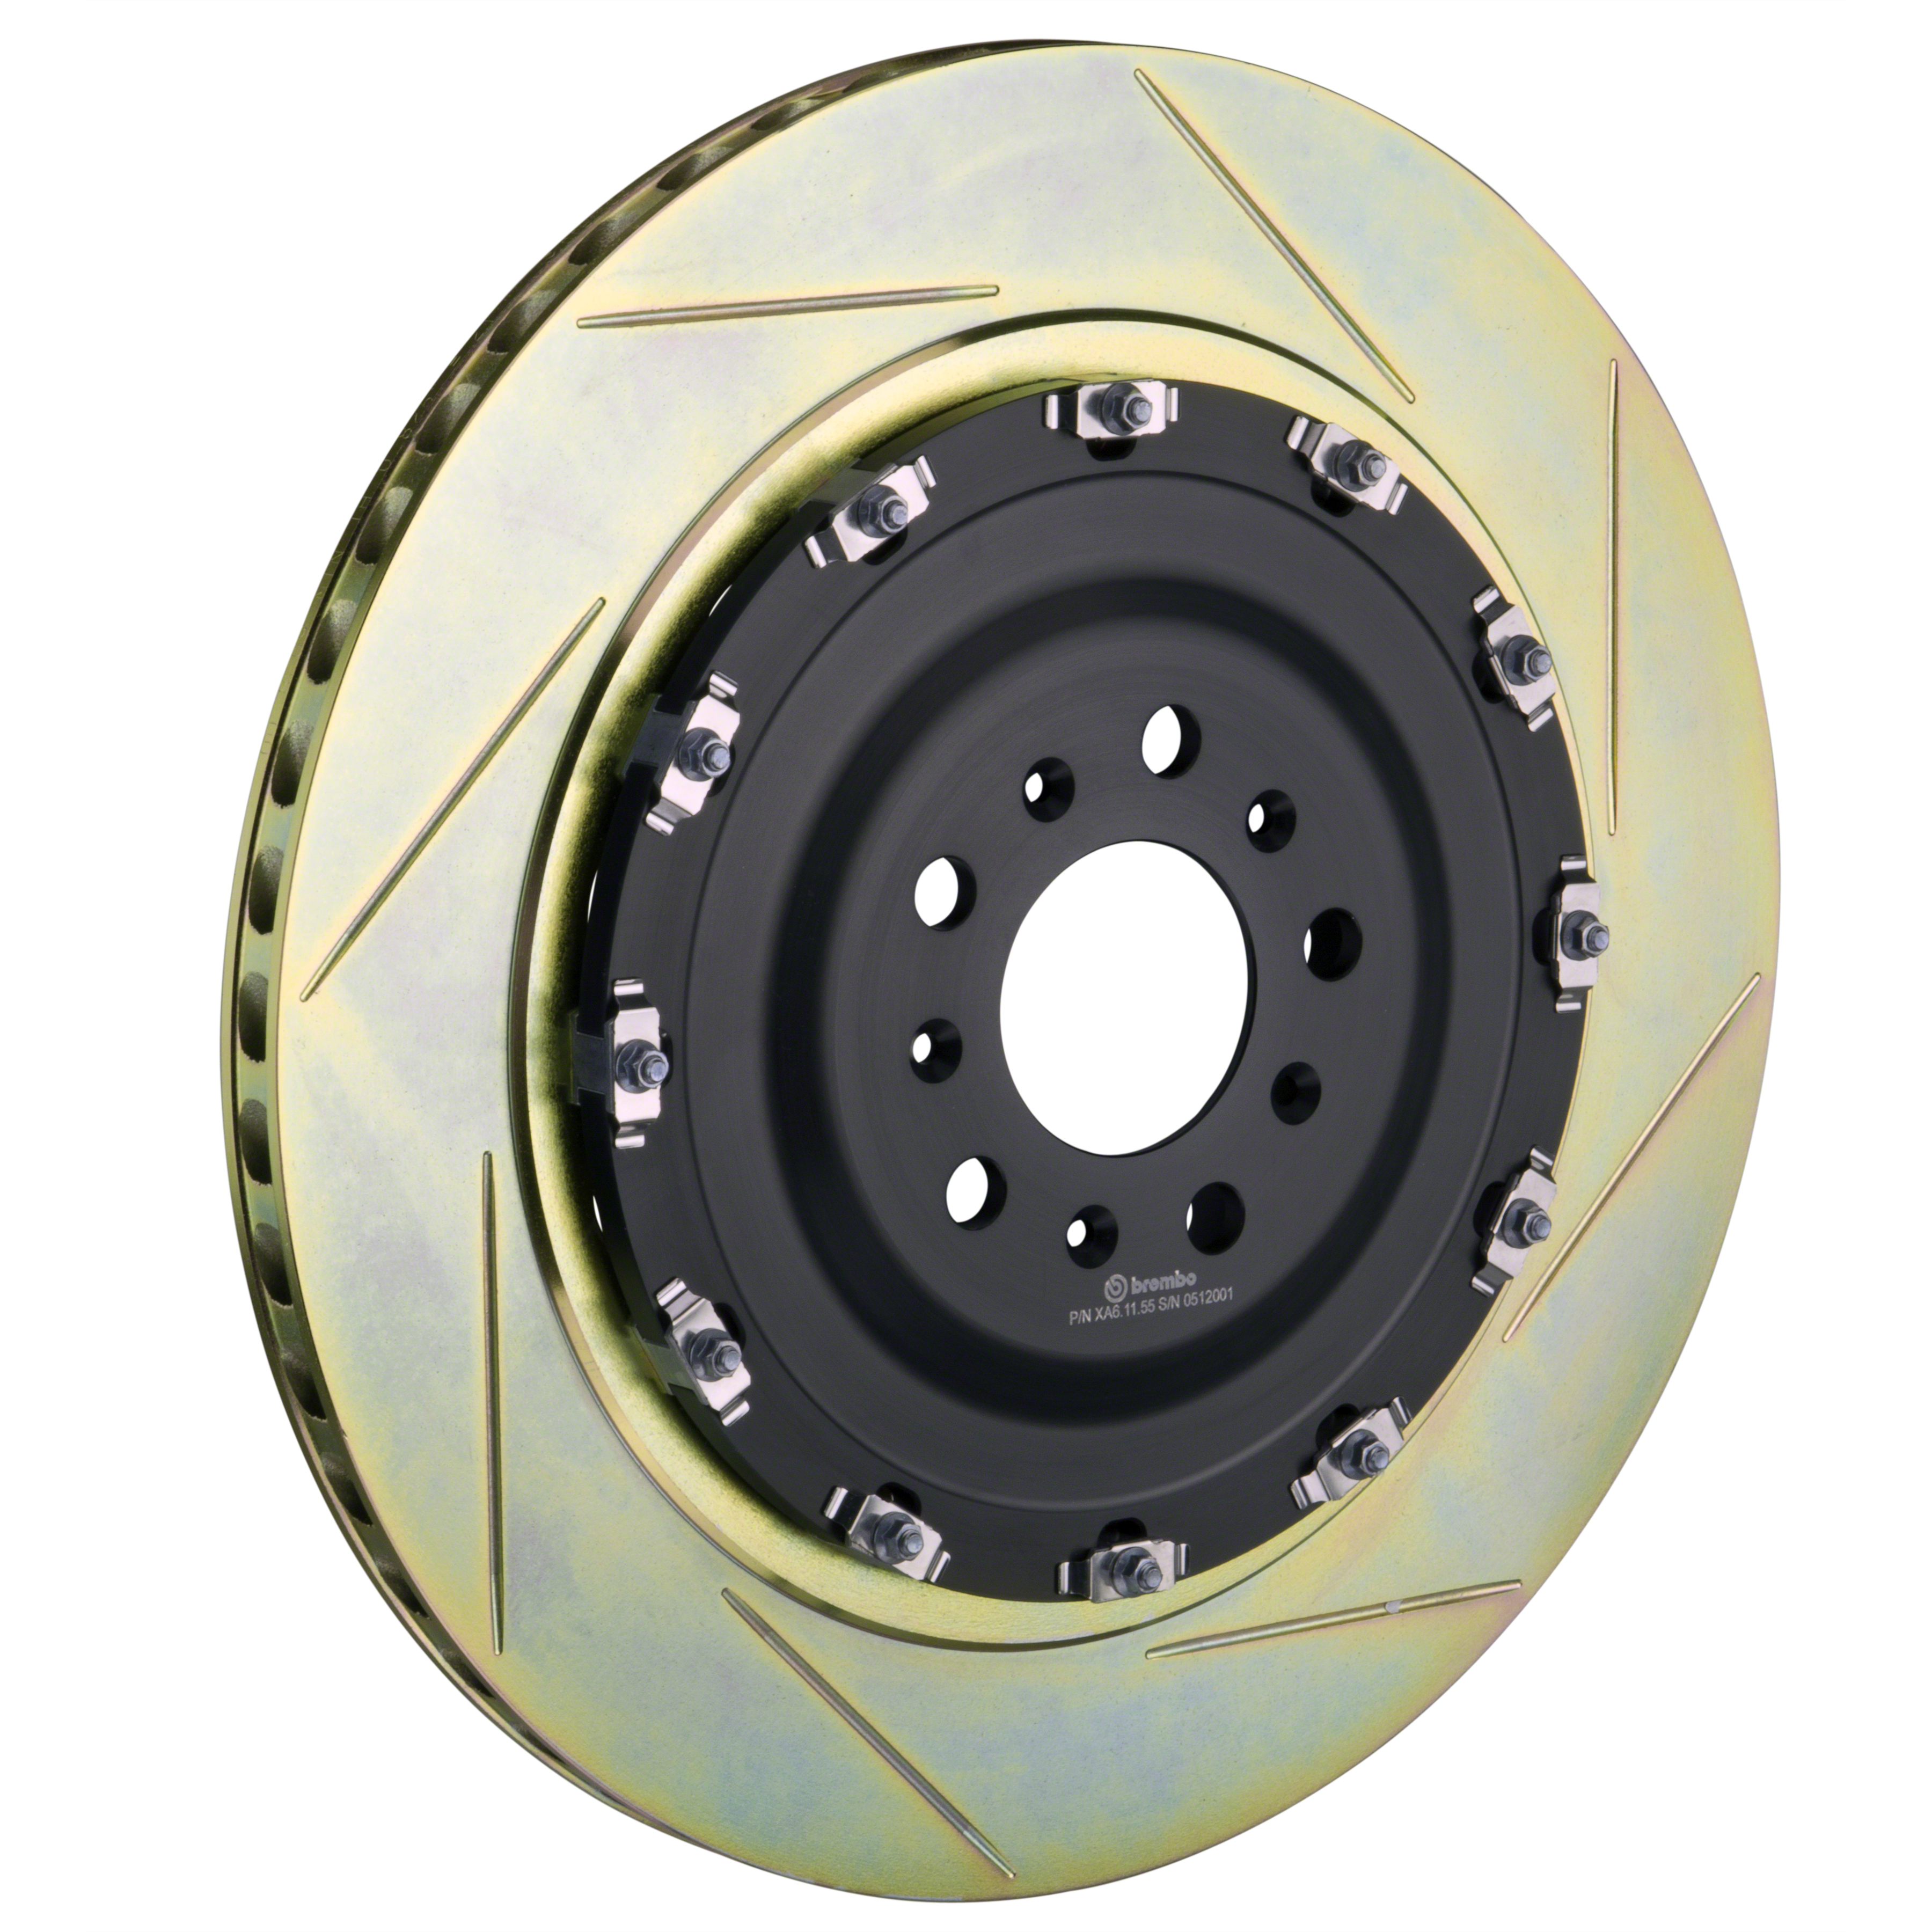 Typev Brembo Performance And Brembo Racing